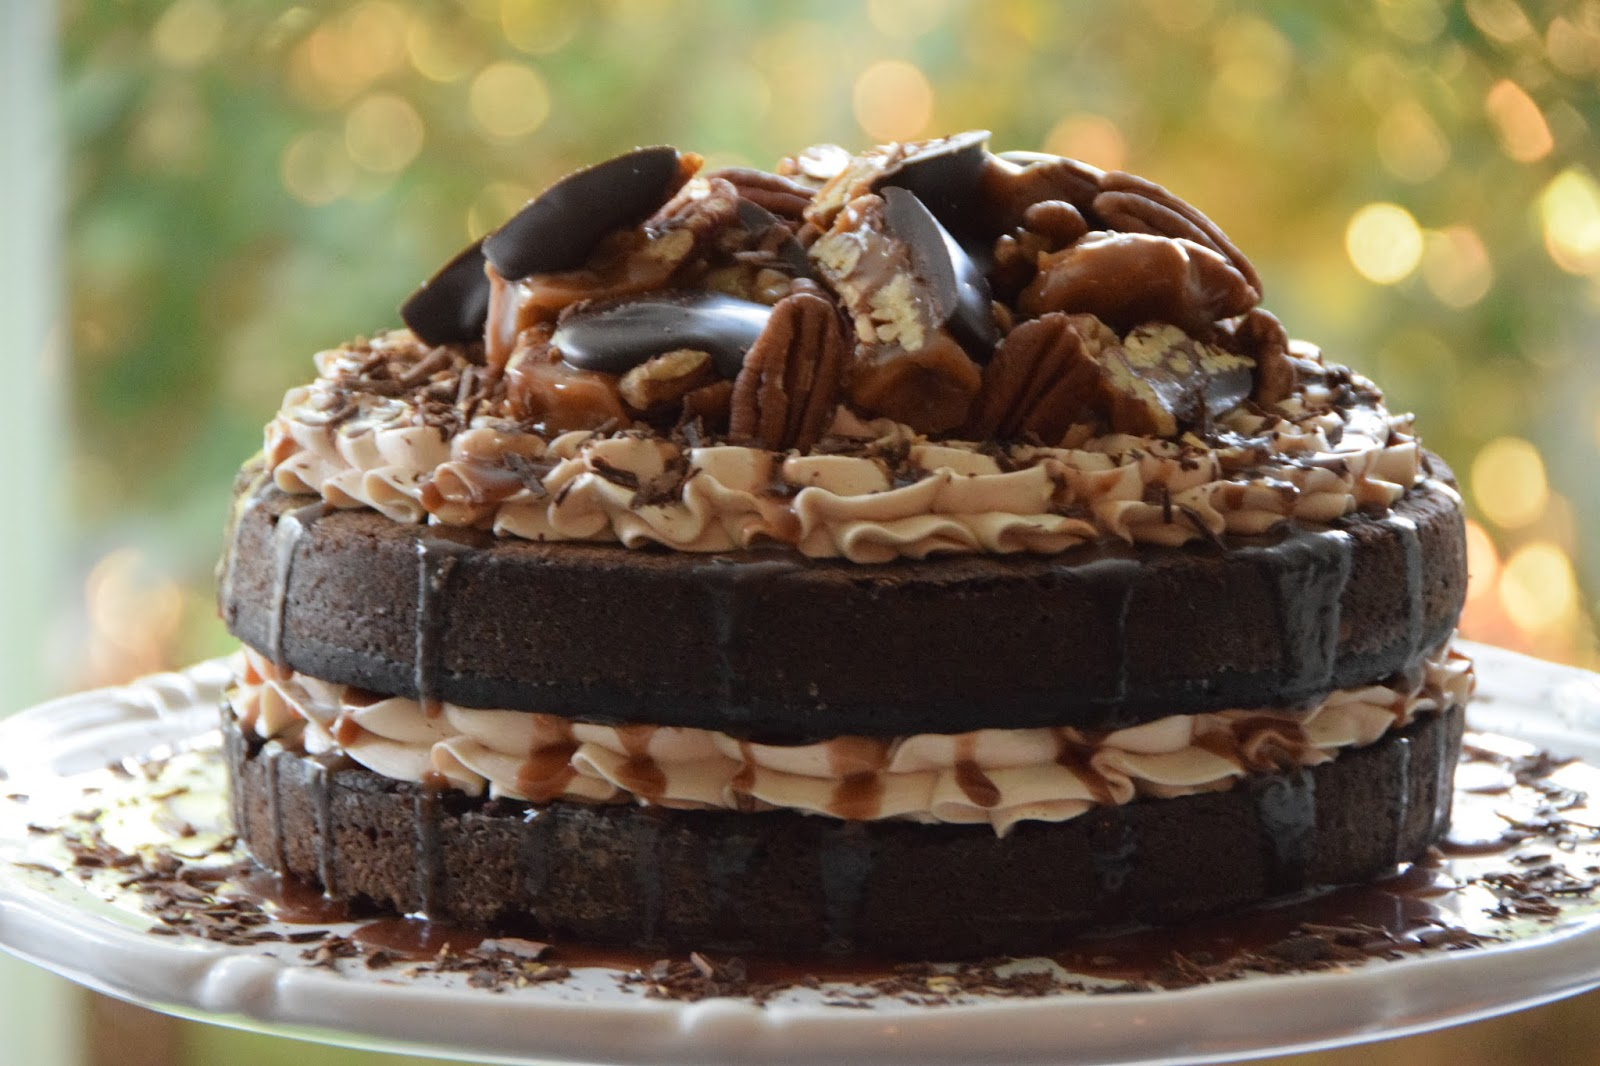 Fueling with Flavour: Chocolate Turtle Cake (Project 150721)